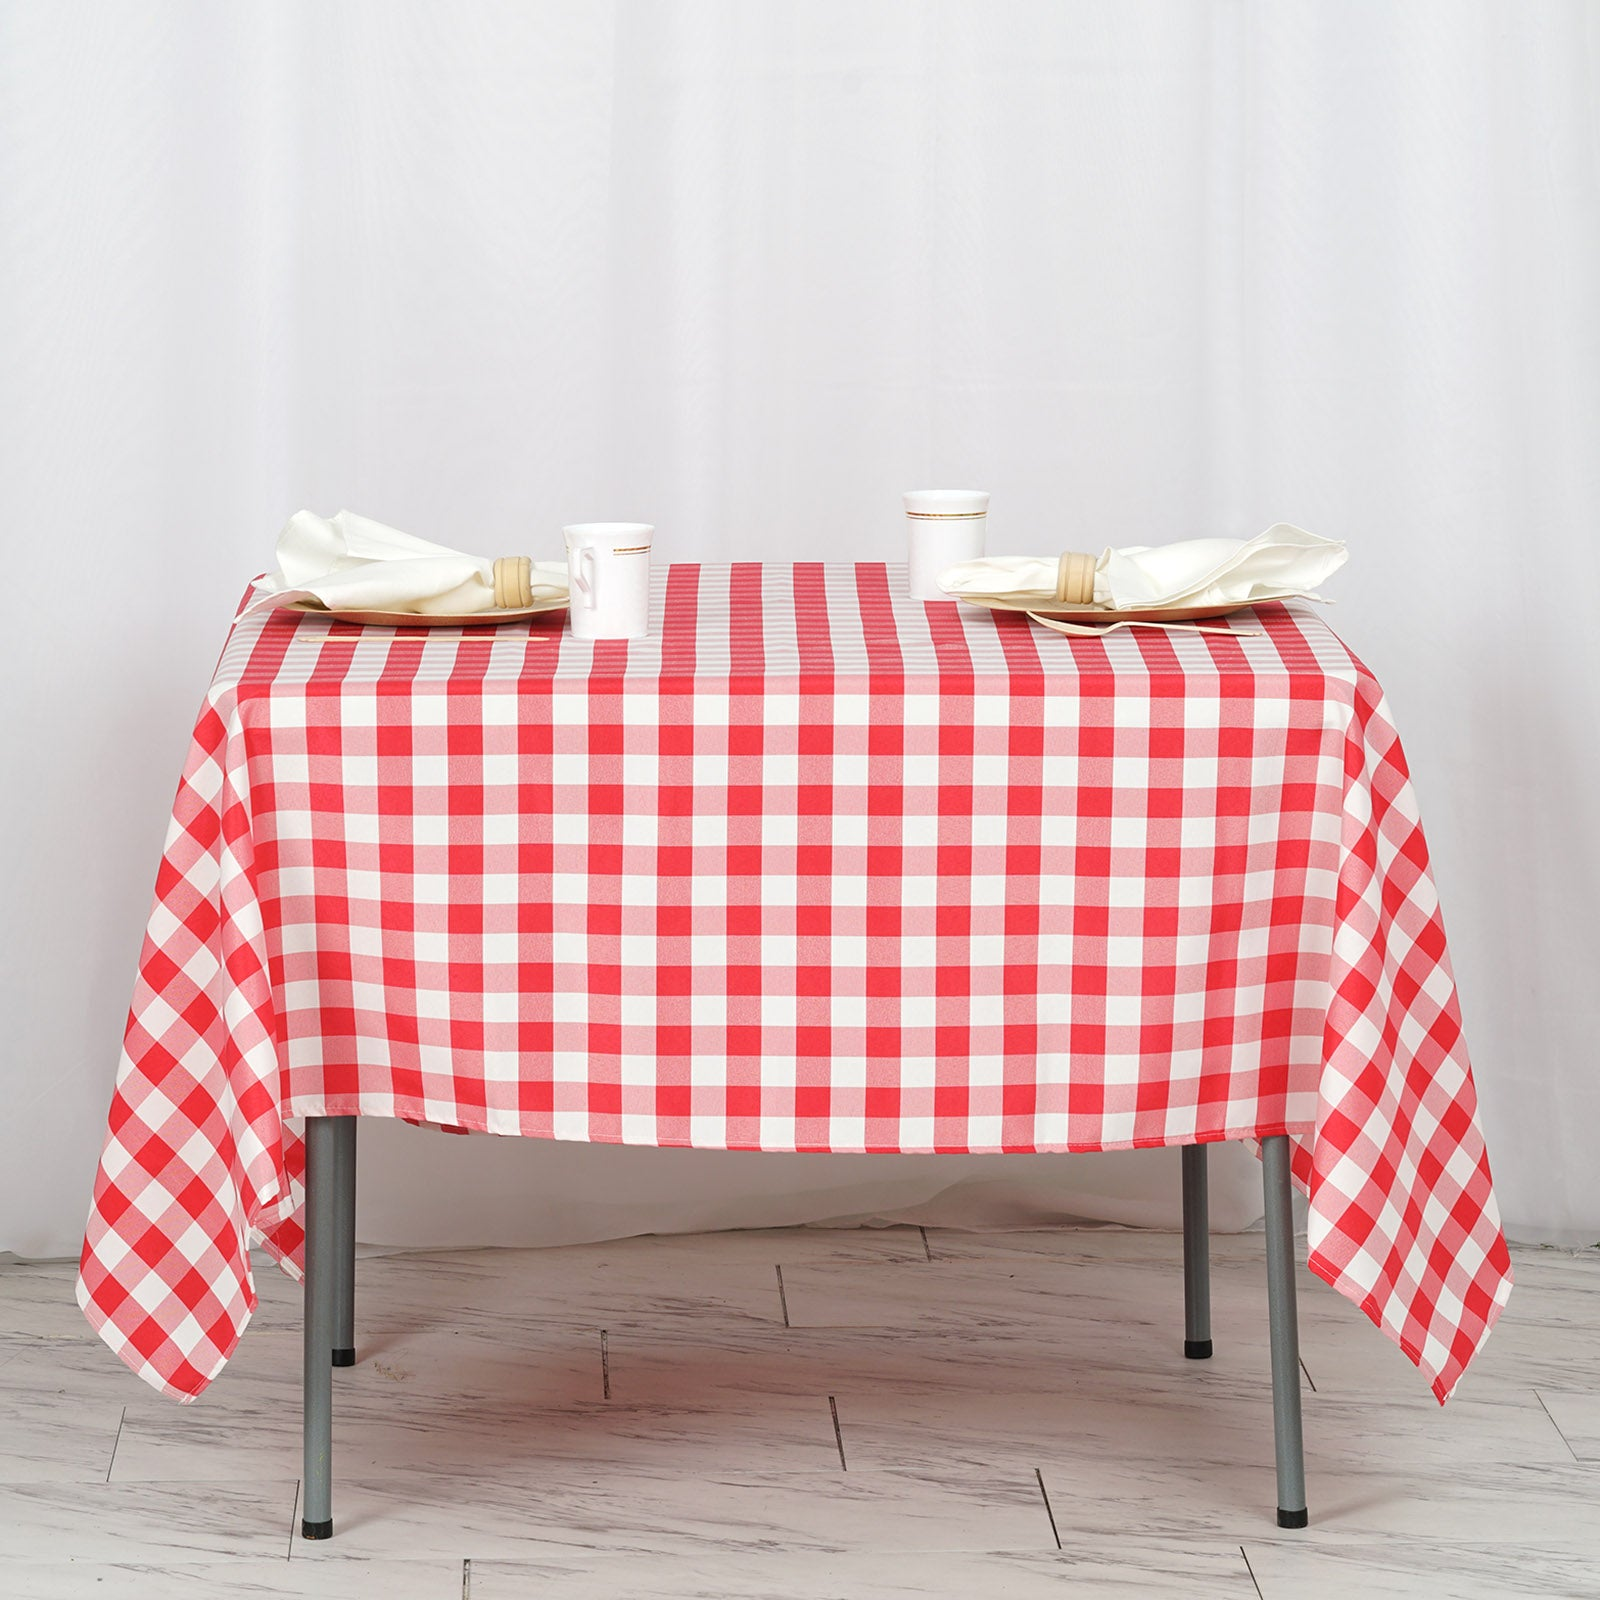 70x70 Whitered Checkered Gingham Polyester Picnic Square